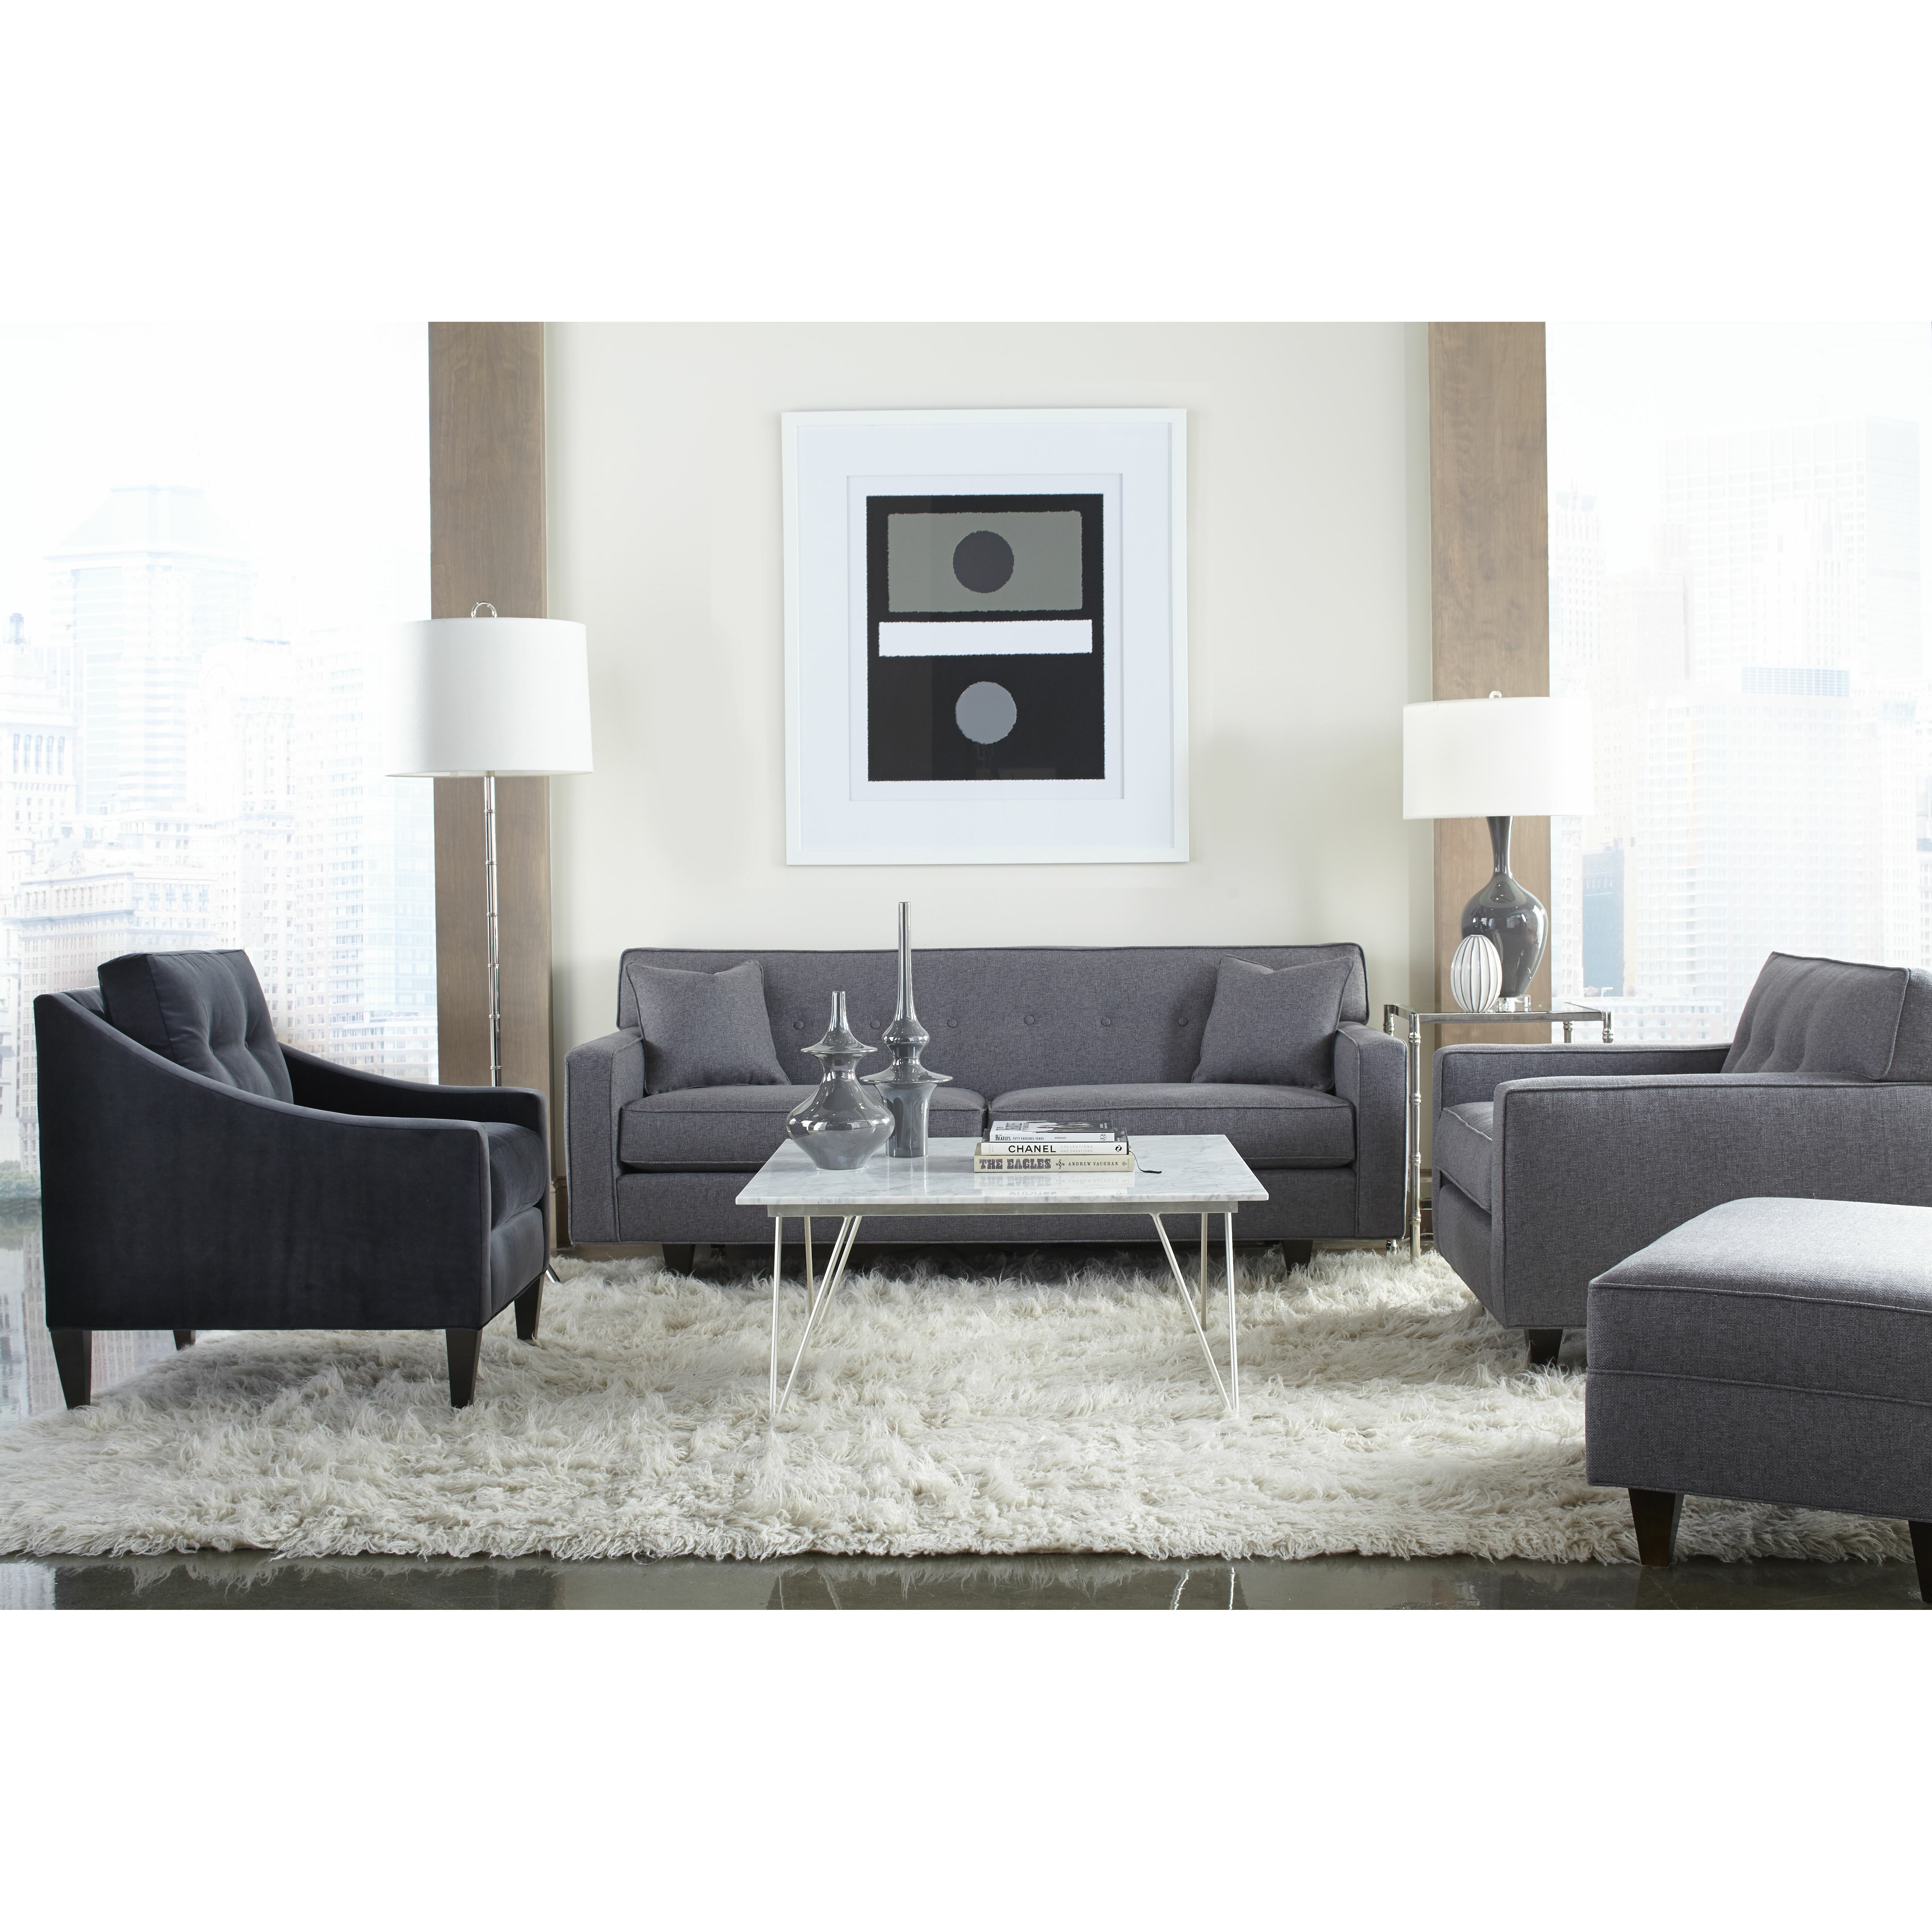 Living Room Collection Furniture Rowe Furniture Dorset Living Room Collection Reviews Wayfair